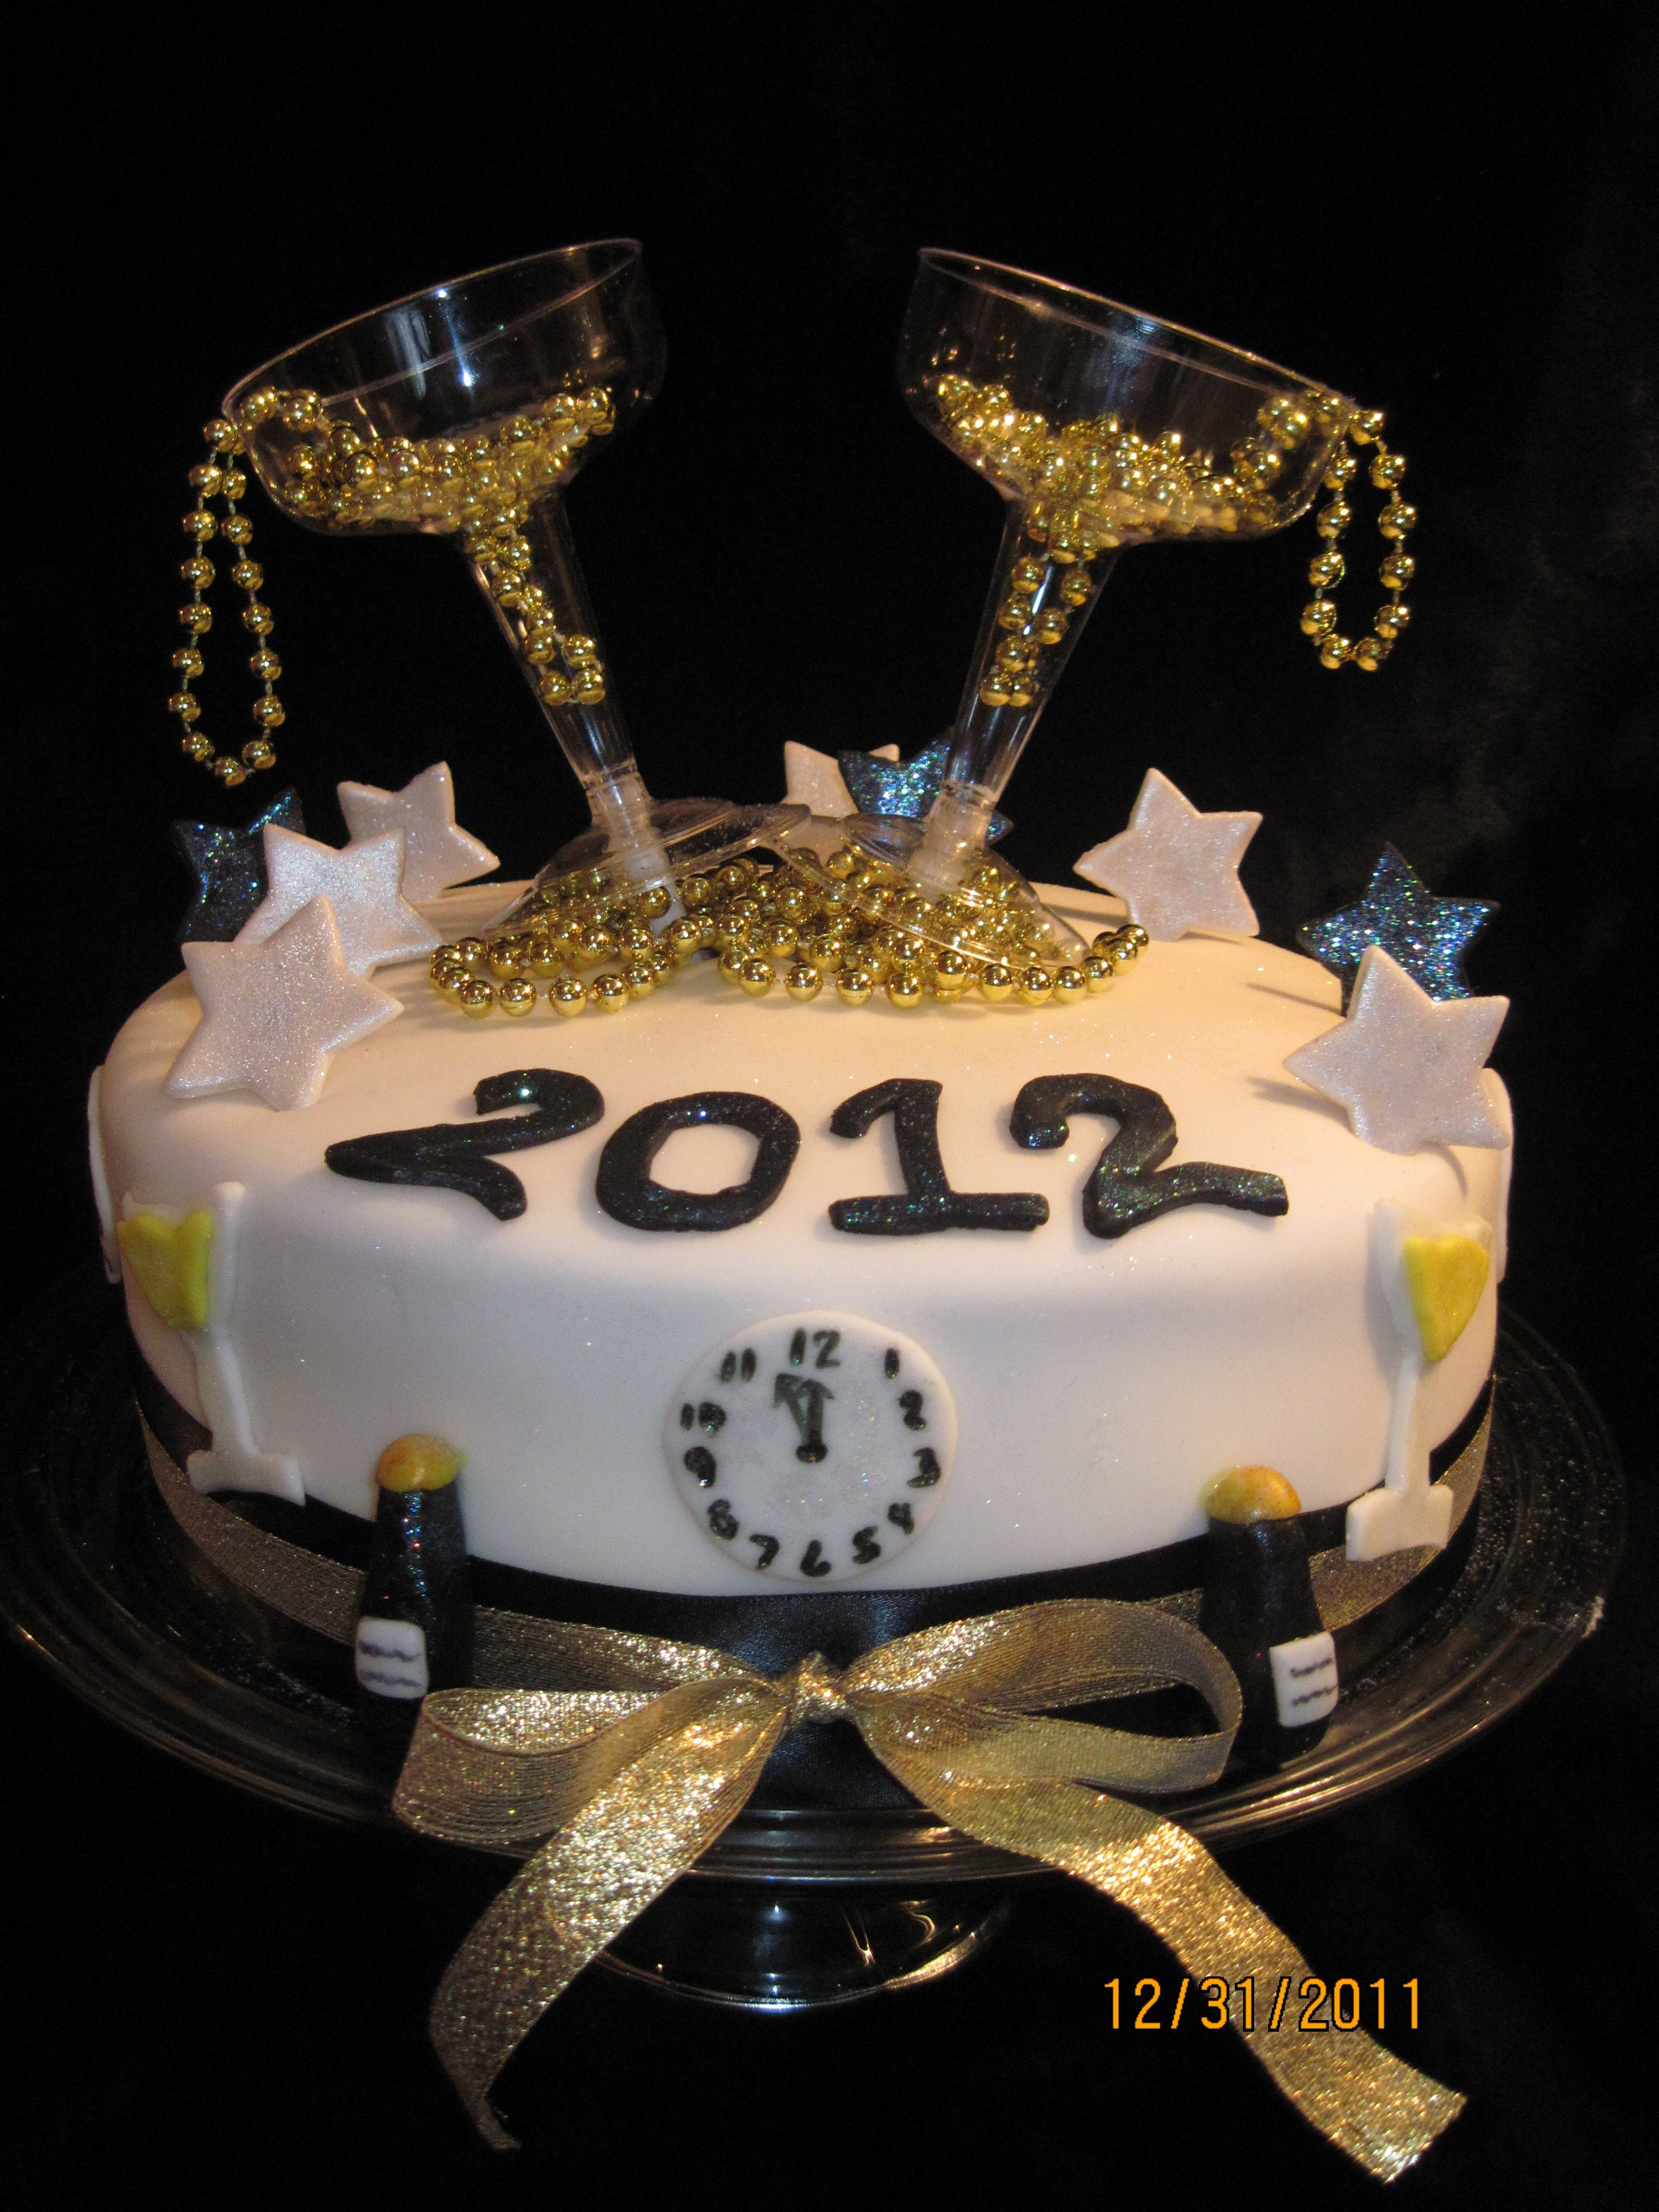 New Year Cake Images Hd : Pin by Kristi Maria on New Year s Pinterest